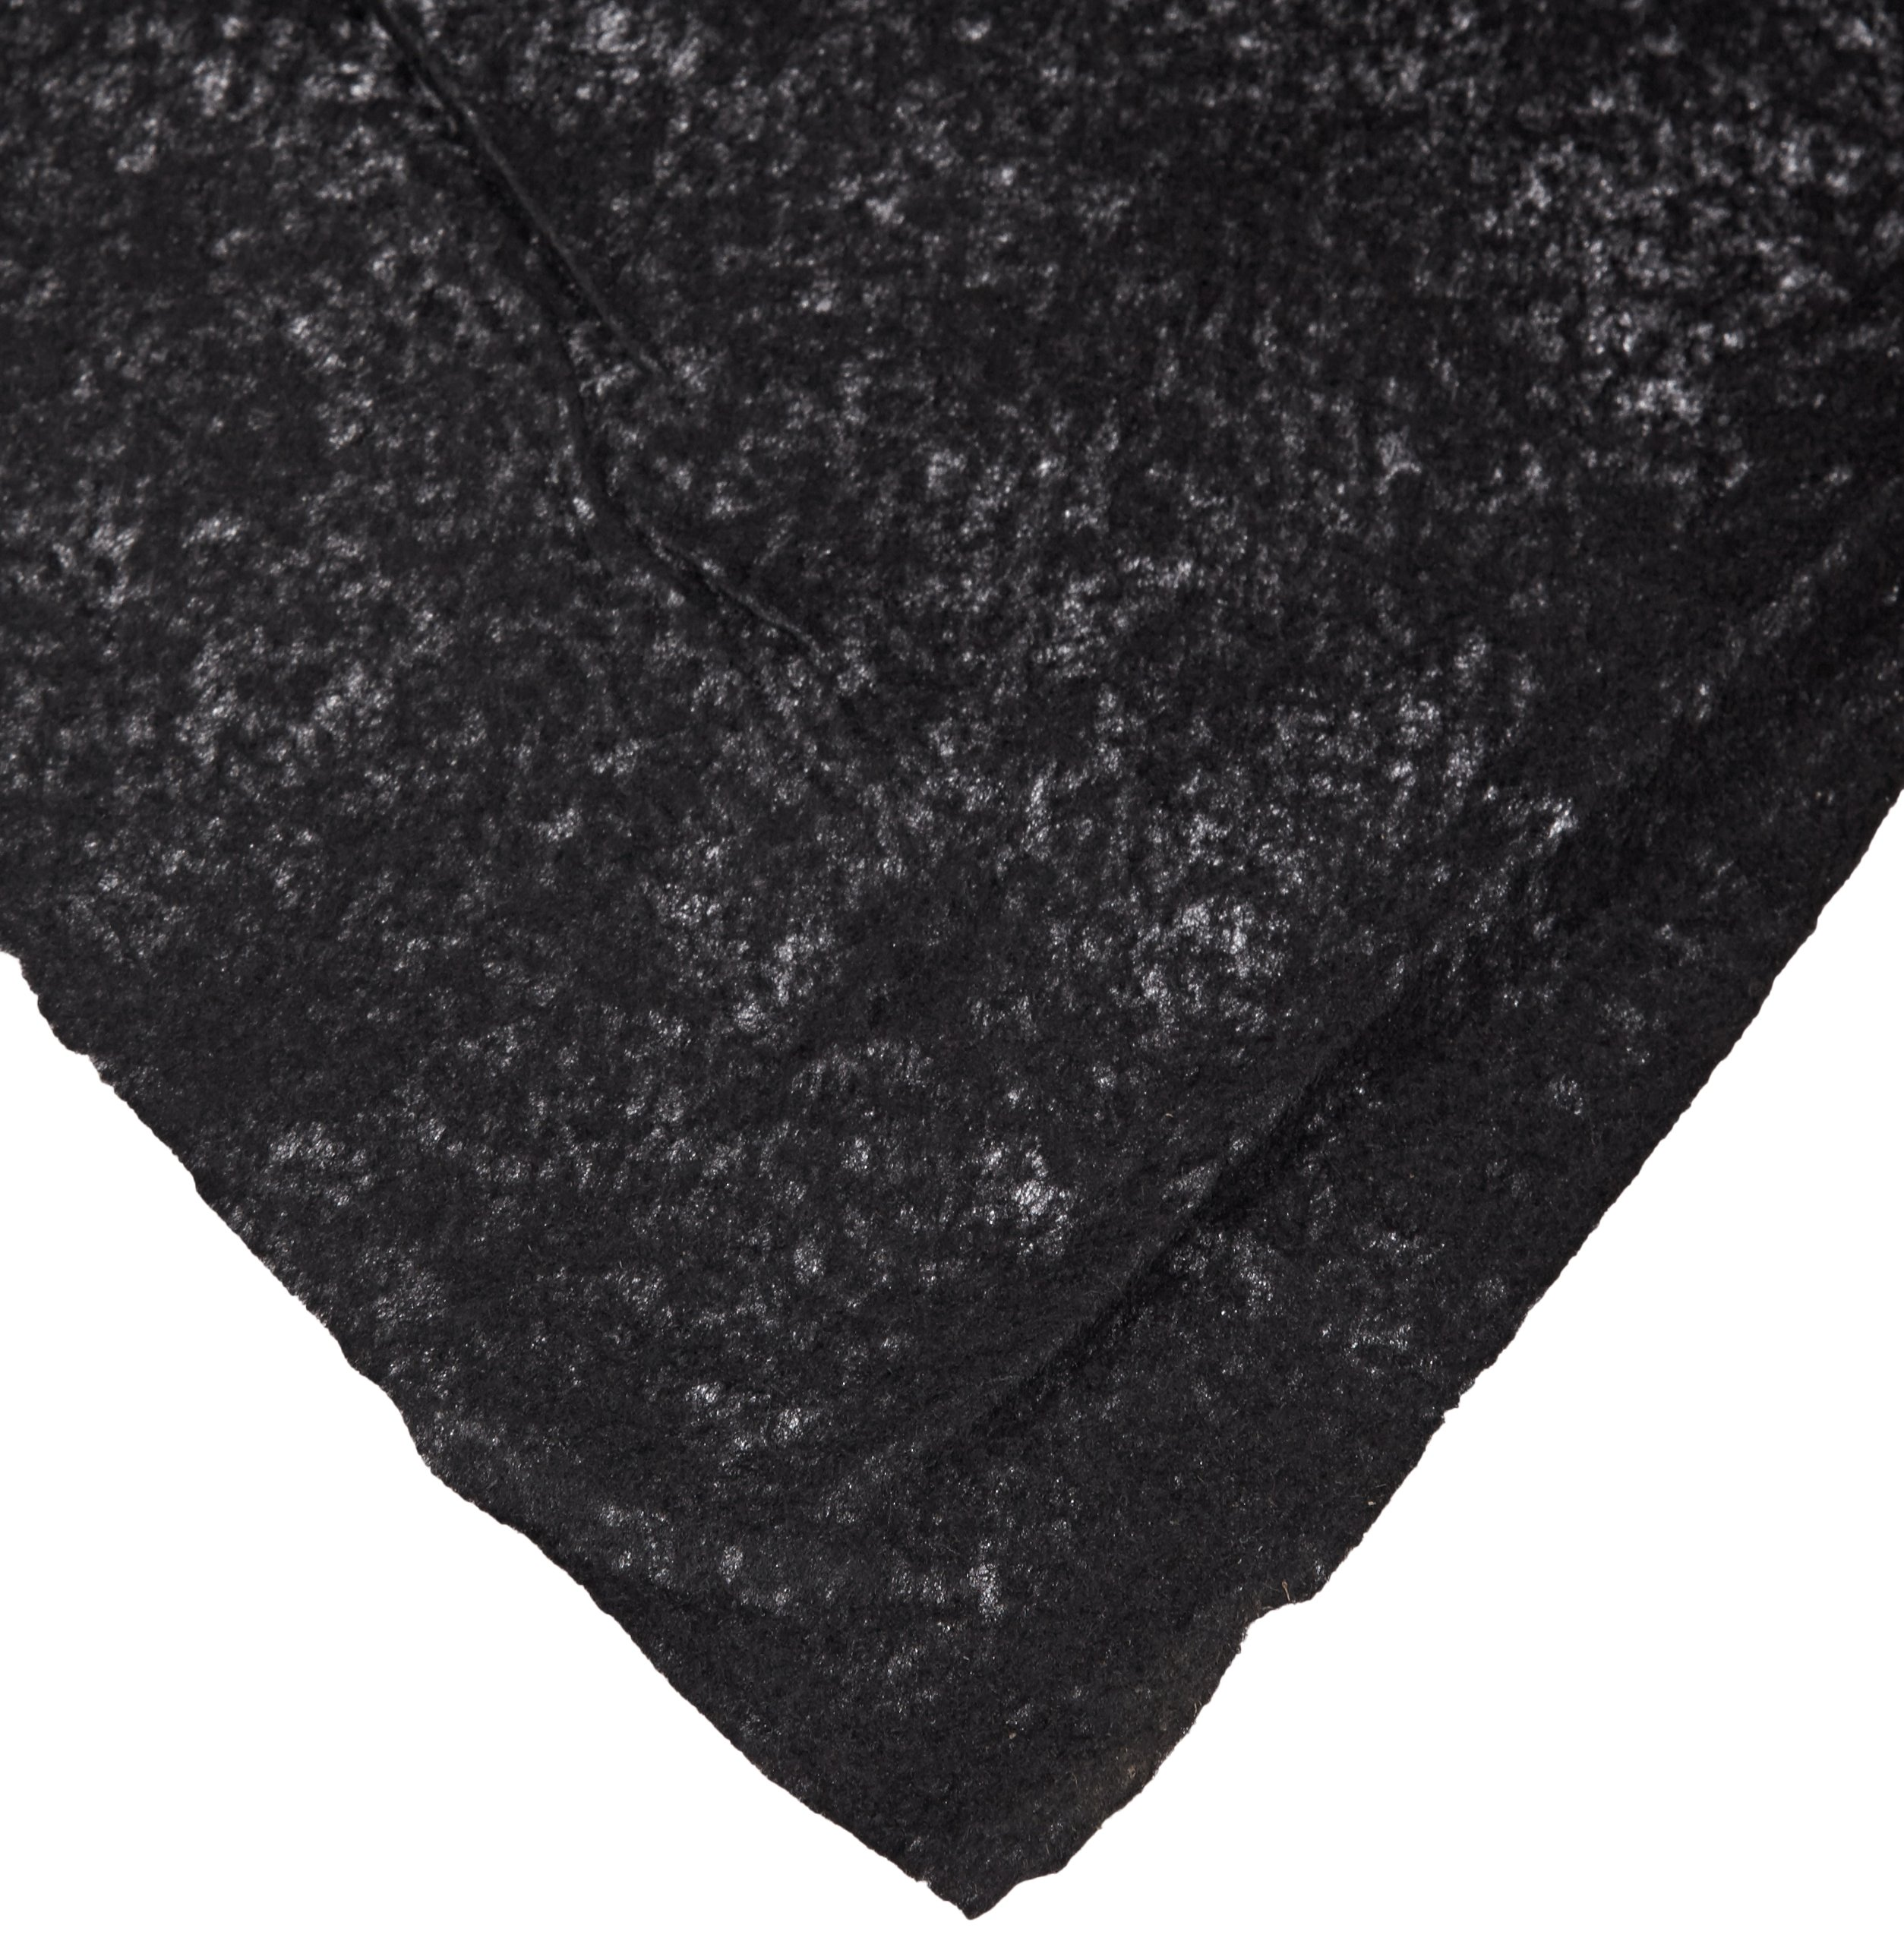 Mutual NW35 Non Woven Geotextile Polypropylene Fabric Cut Roll, 90 lbs Grab Tensile Strength, 300' Length x 6' Width by Mutual Industries